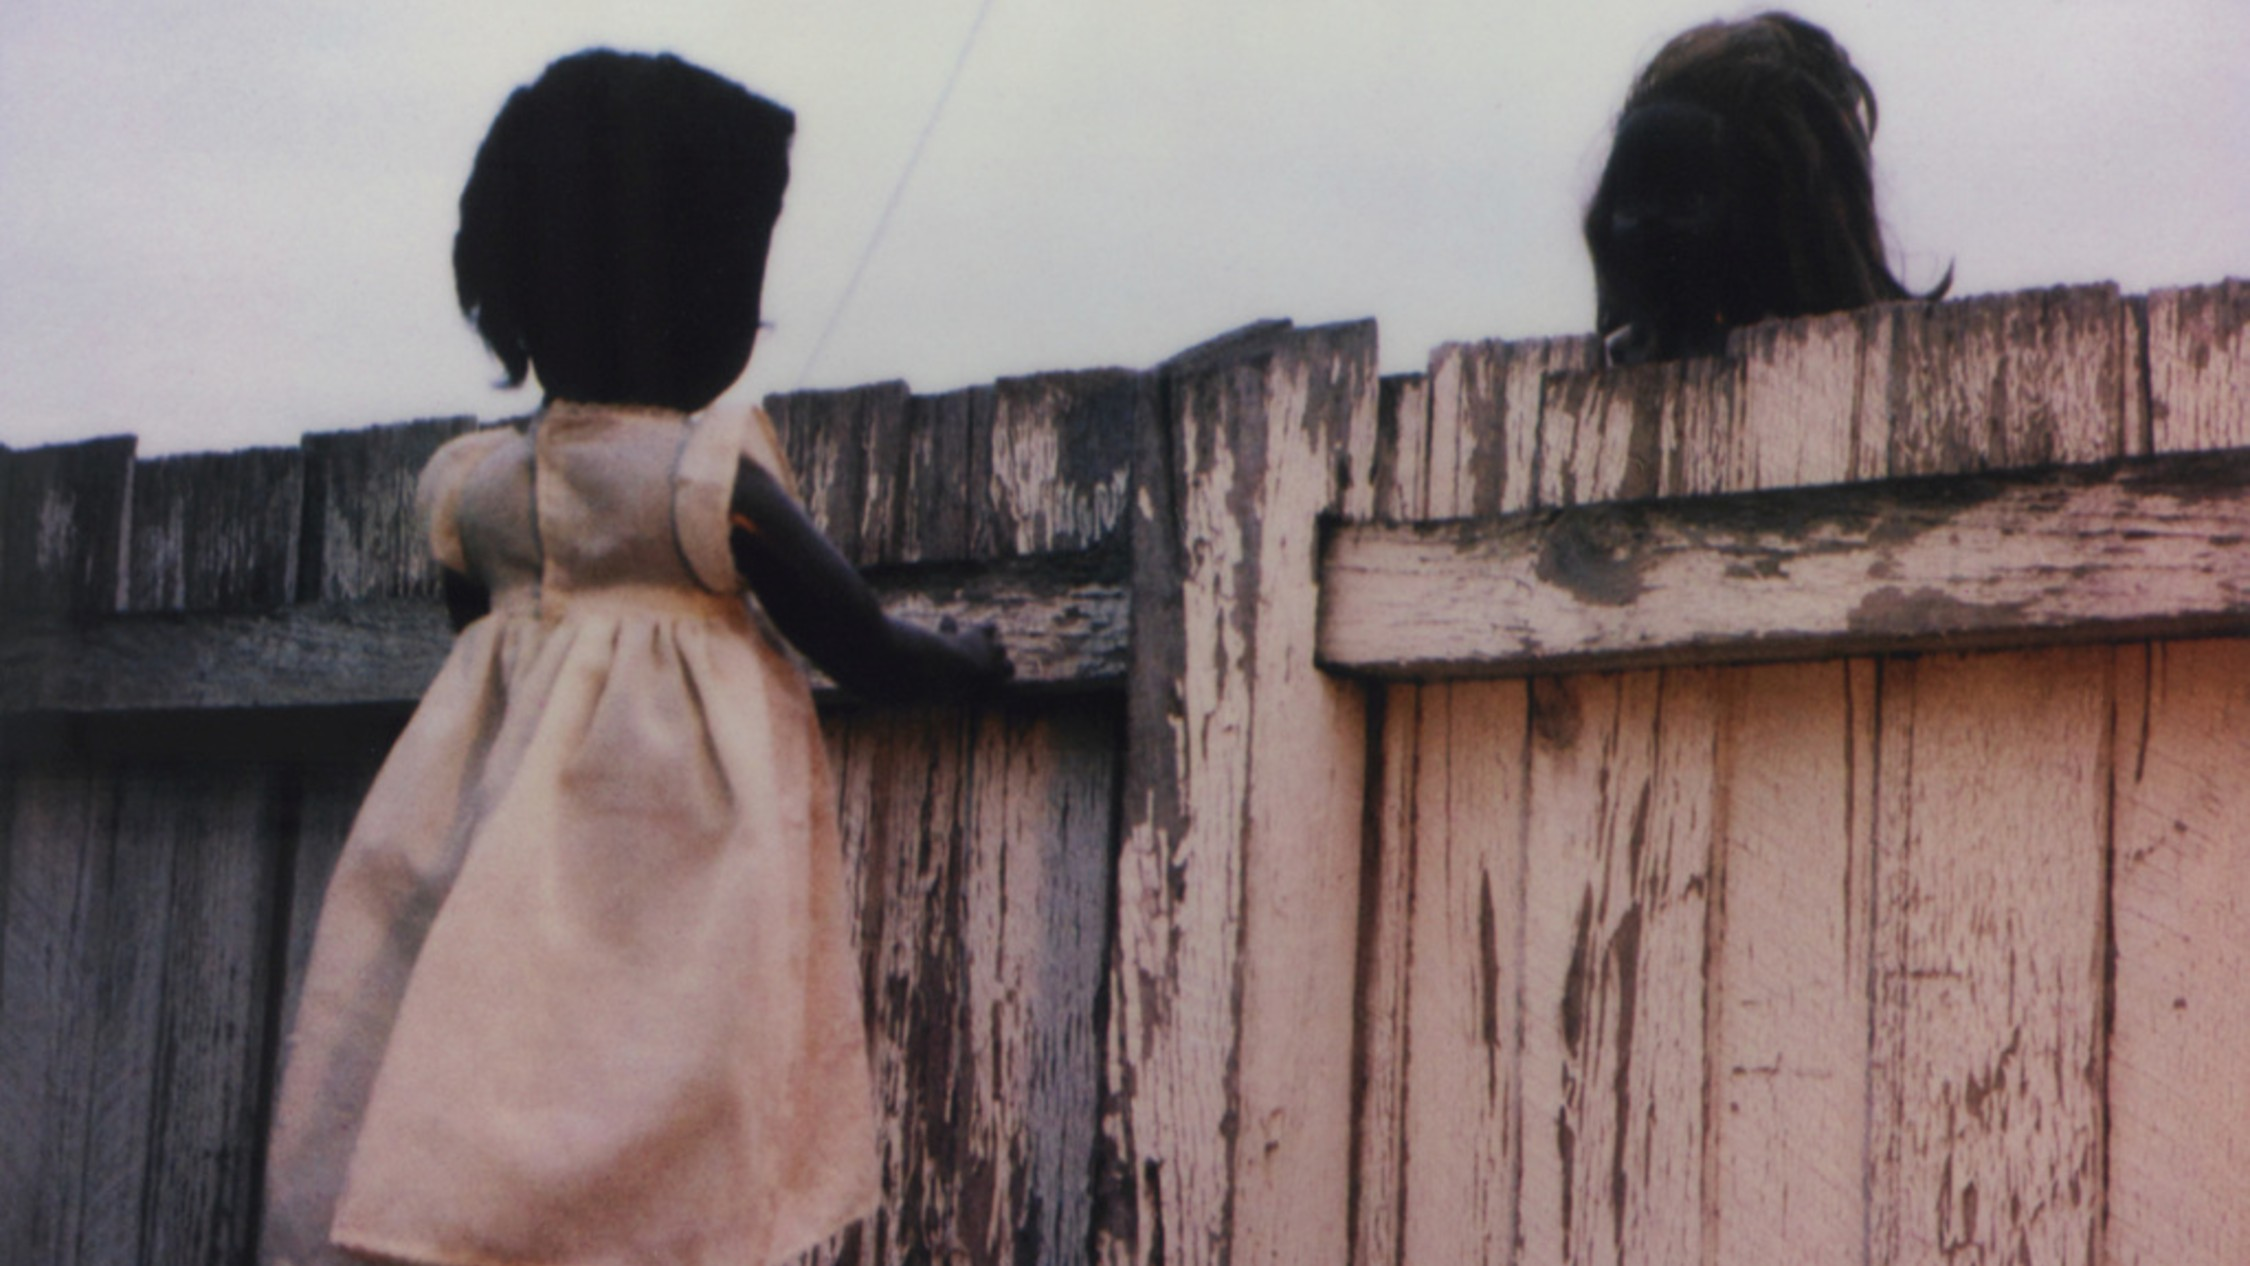 Destiny Deacon, Over the Fence, from the series Sad & Bad